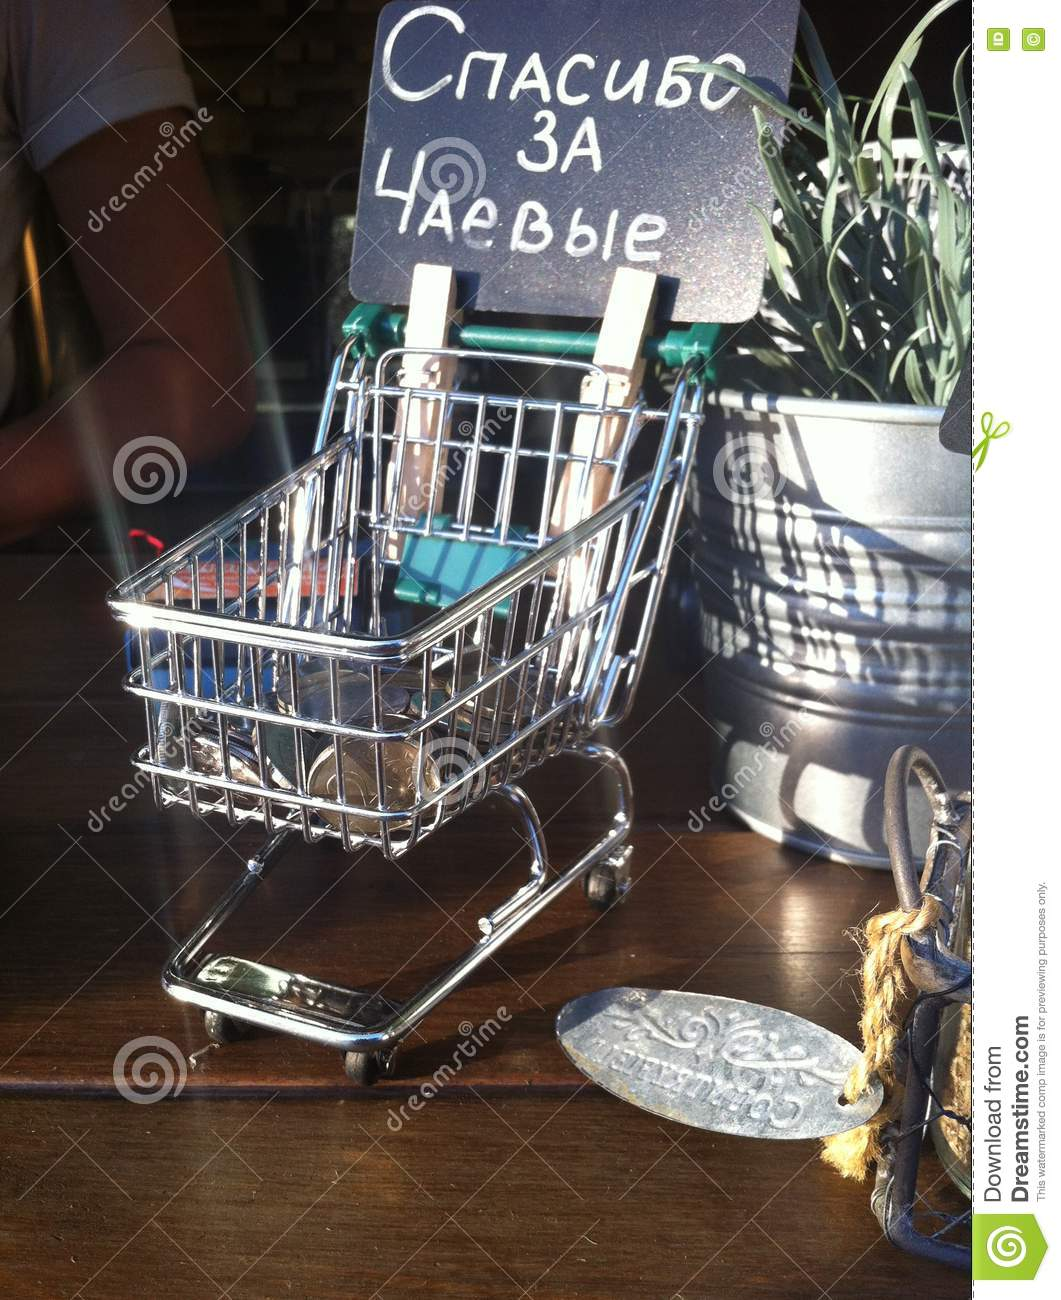 Toy shopping cart with coins and plate  Thanks for the tip